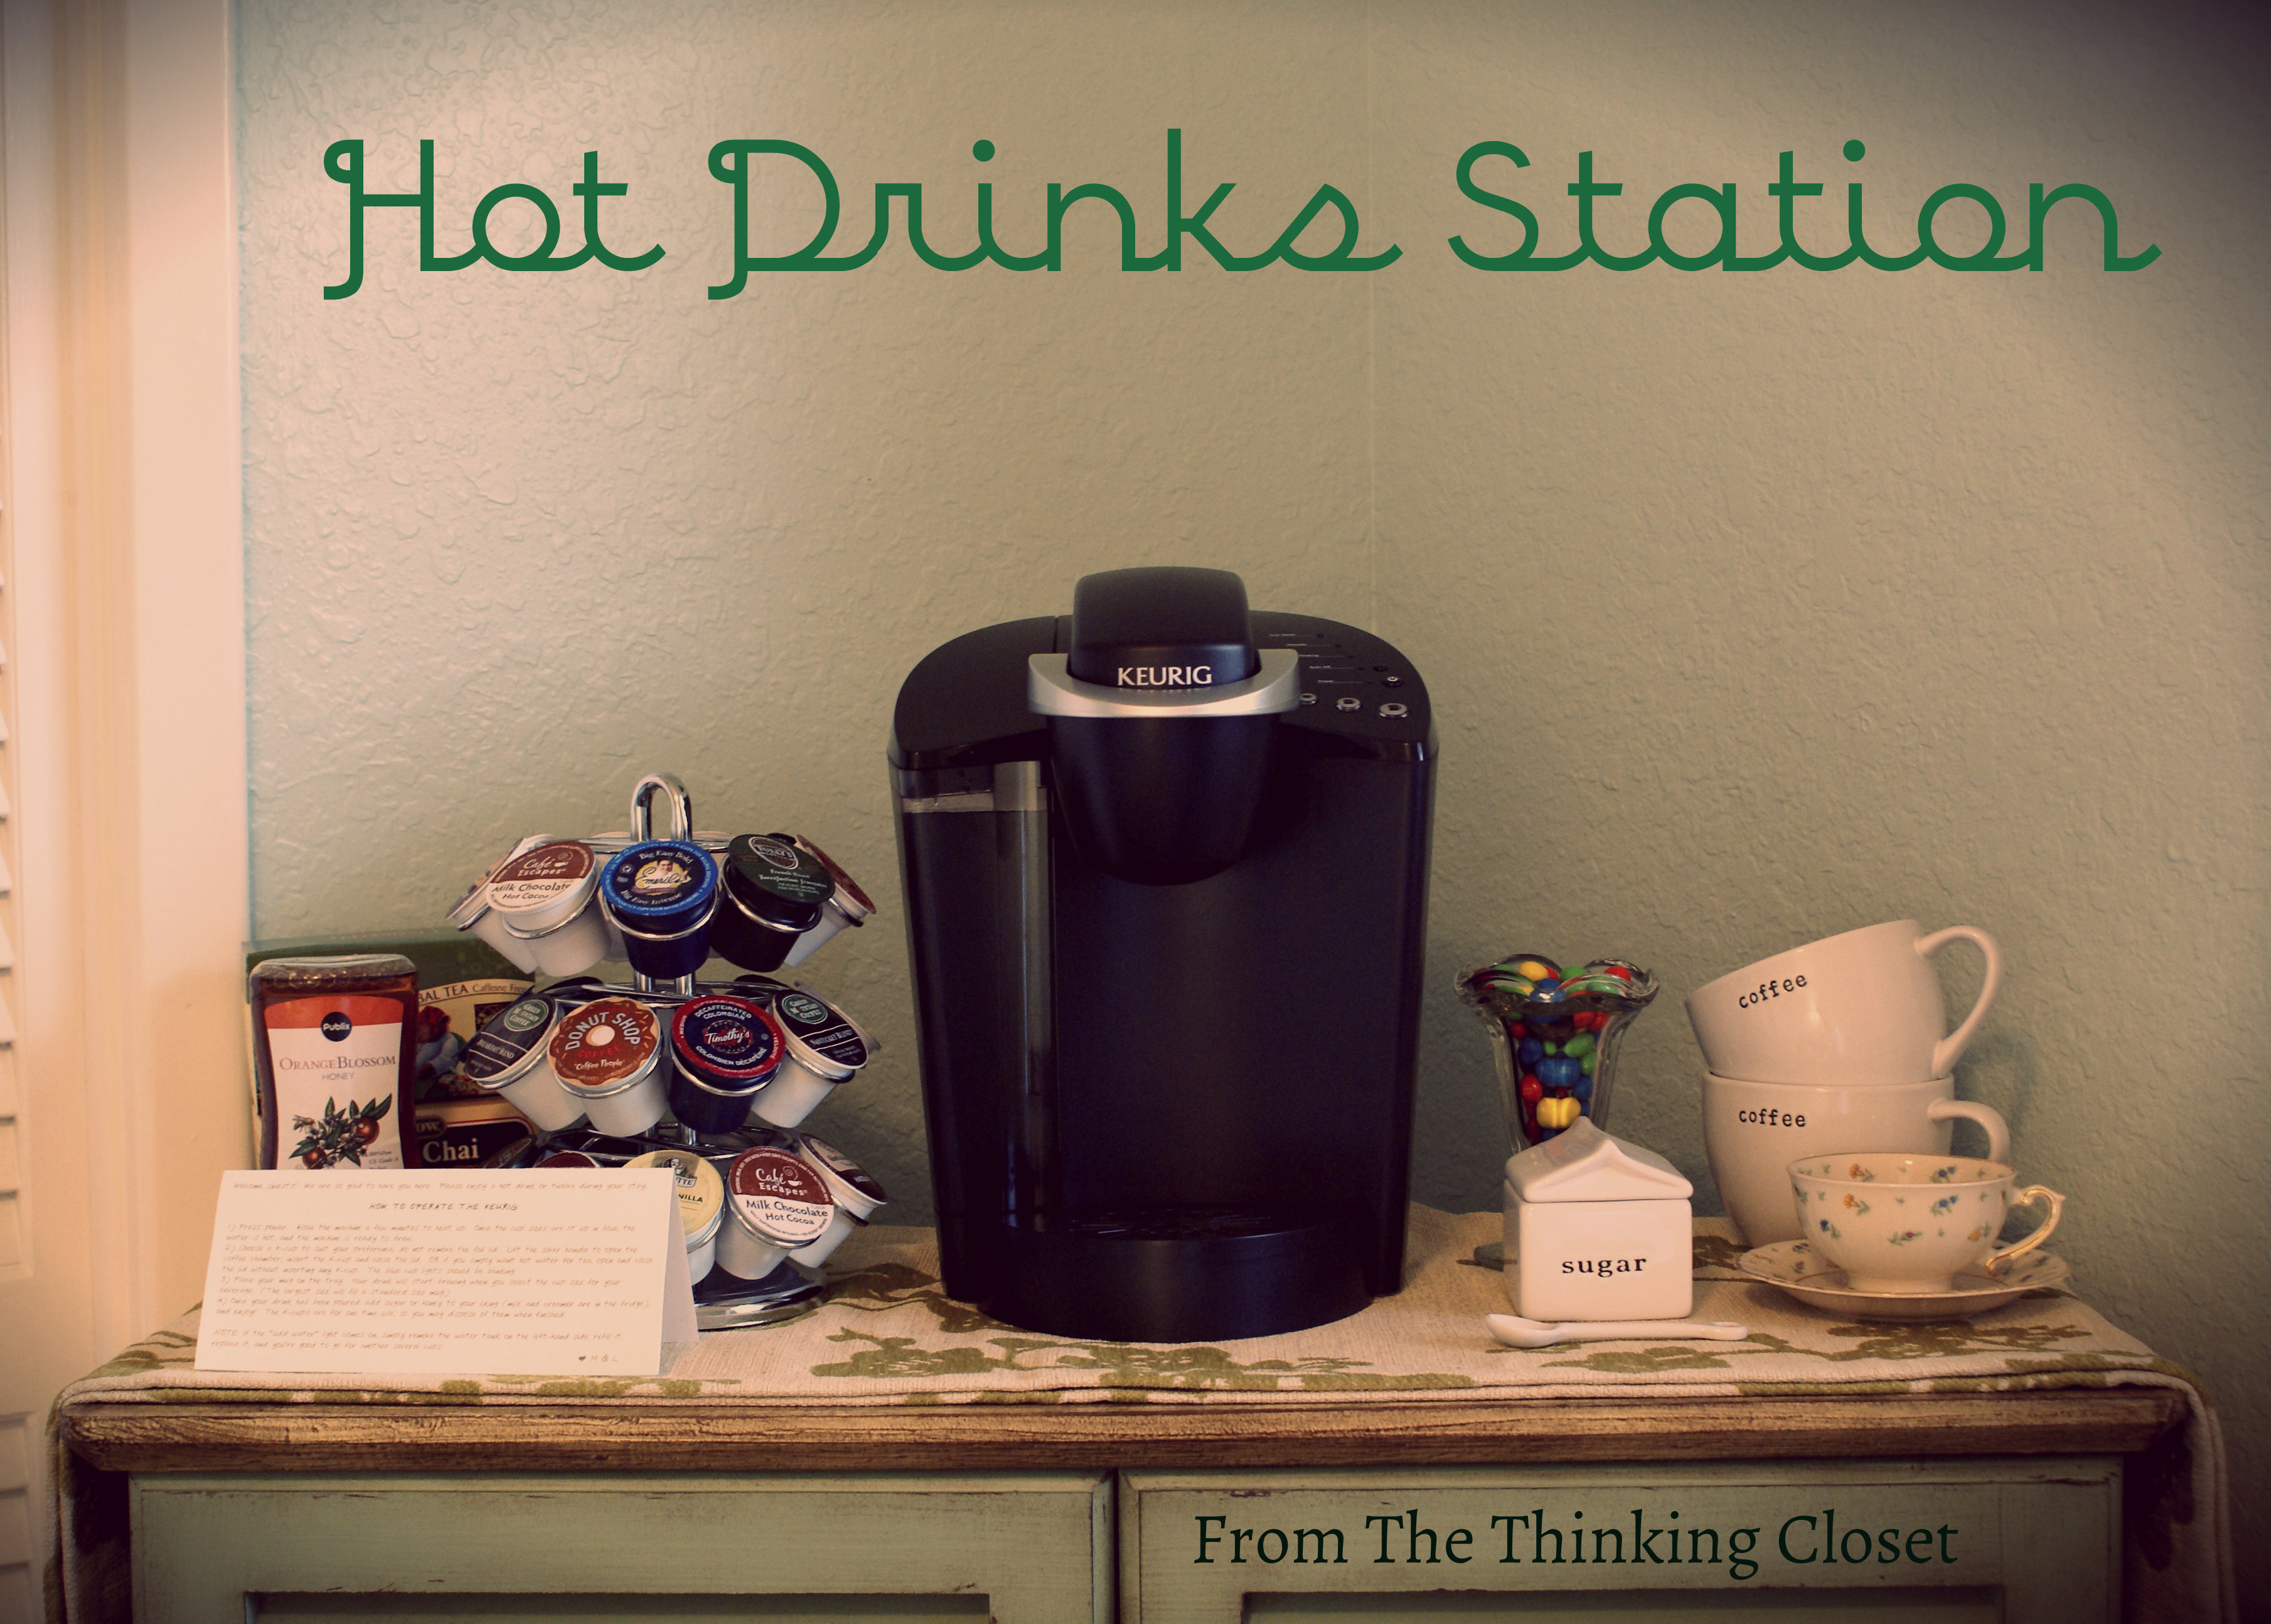 Hot Drinks Station via The Thinking Closet